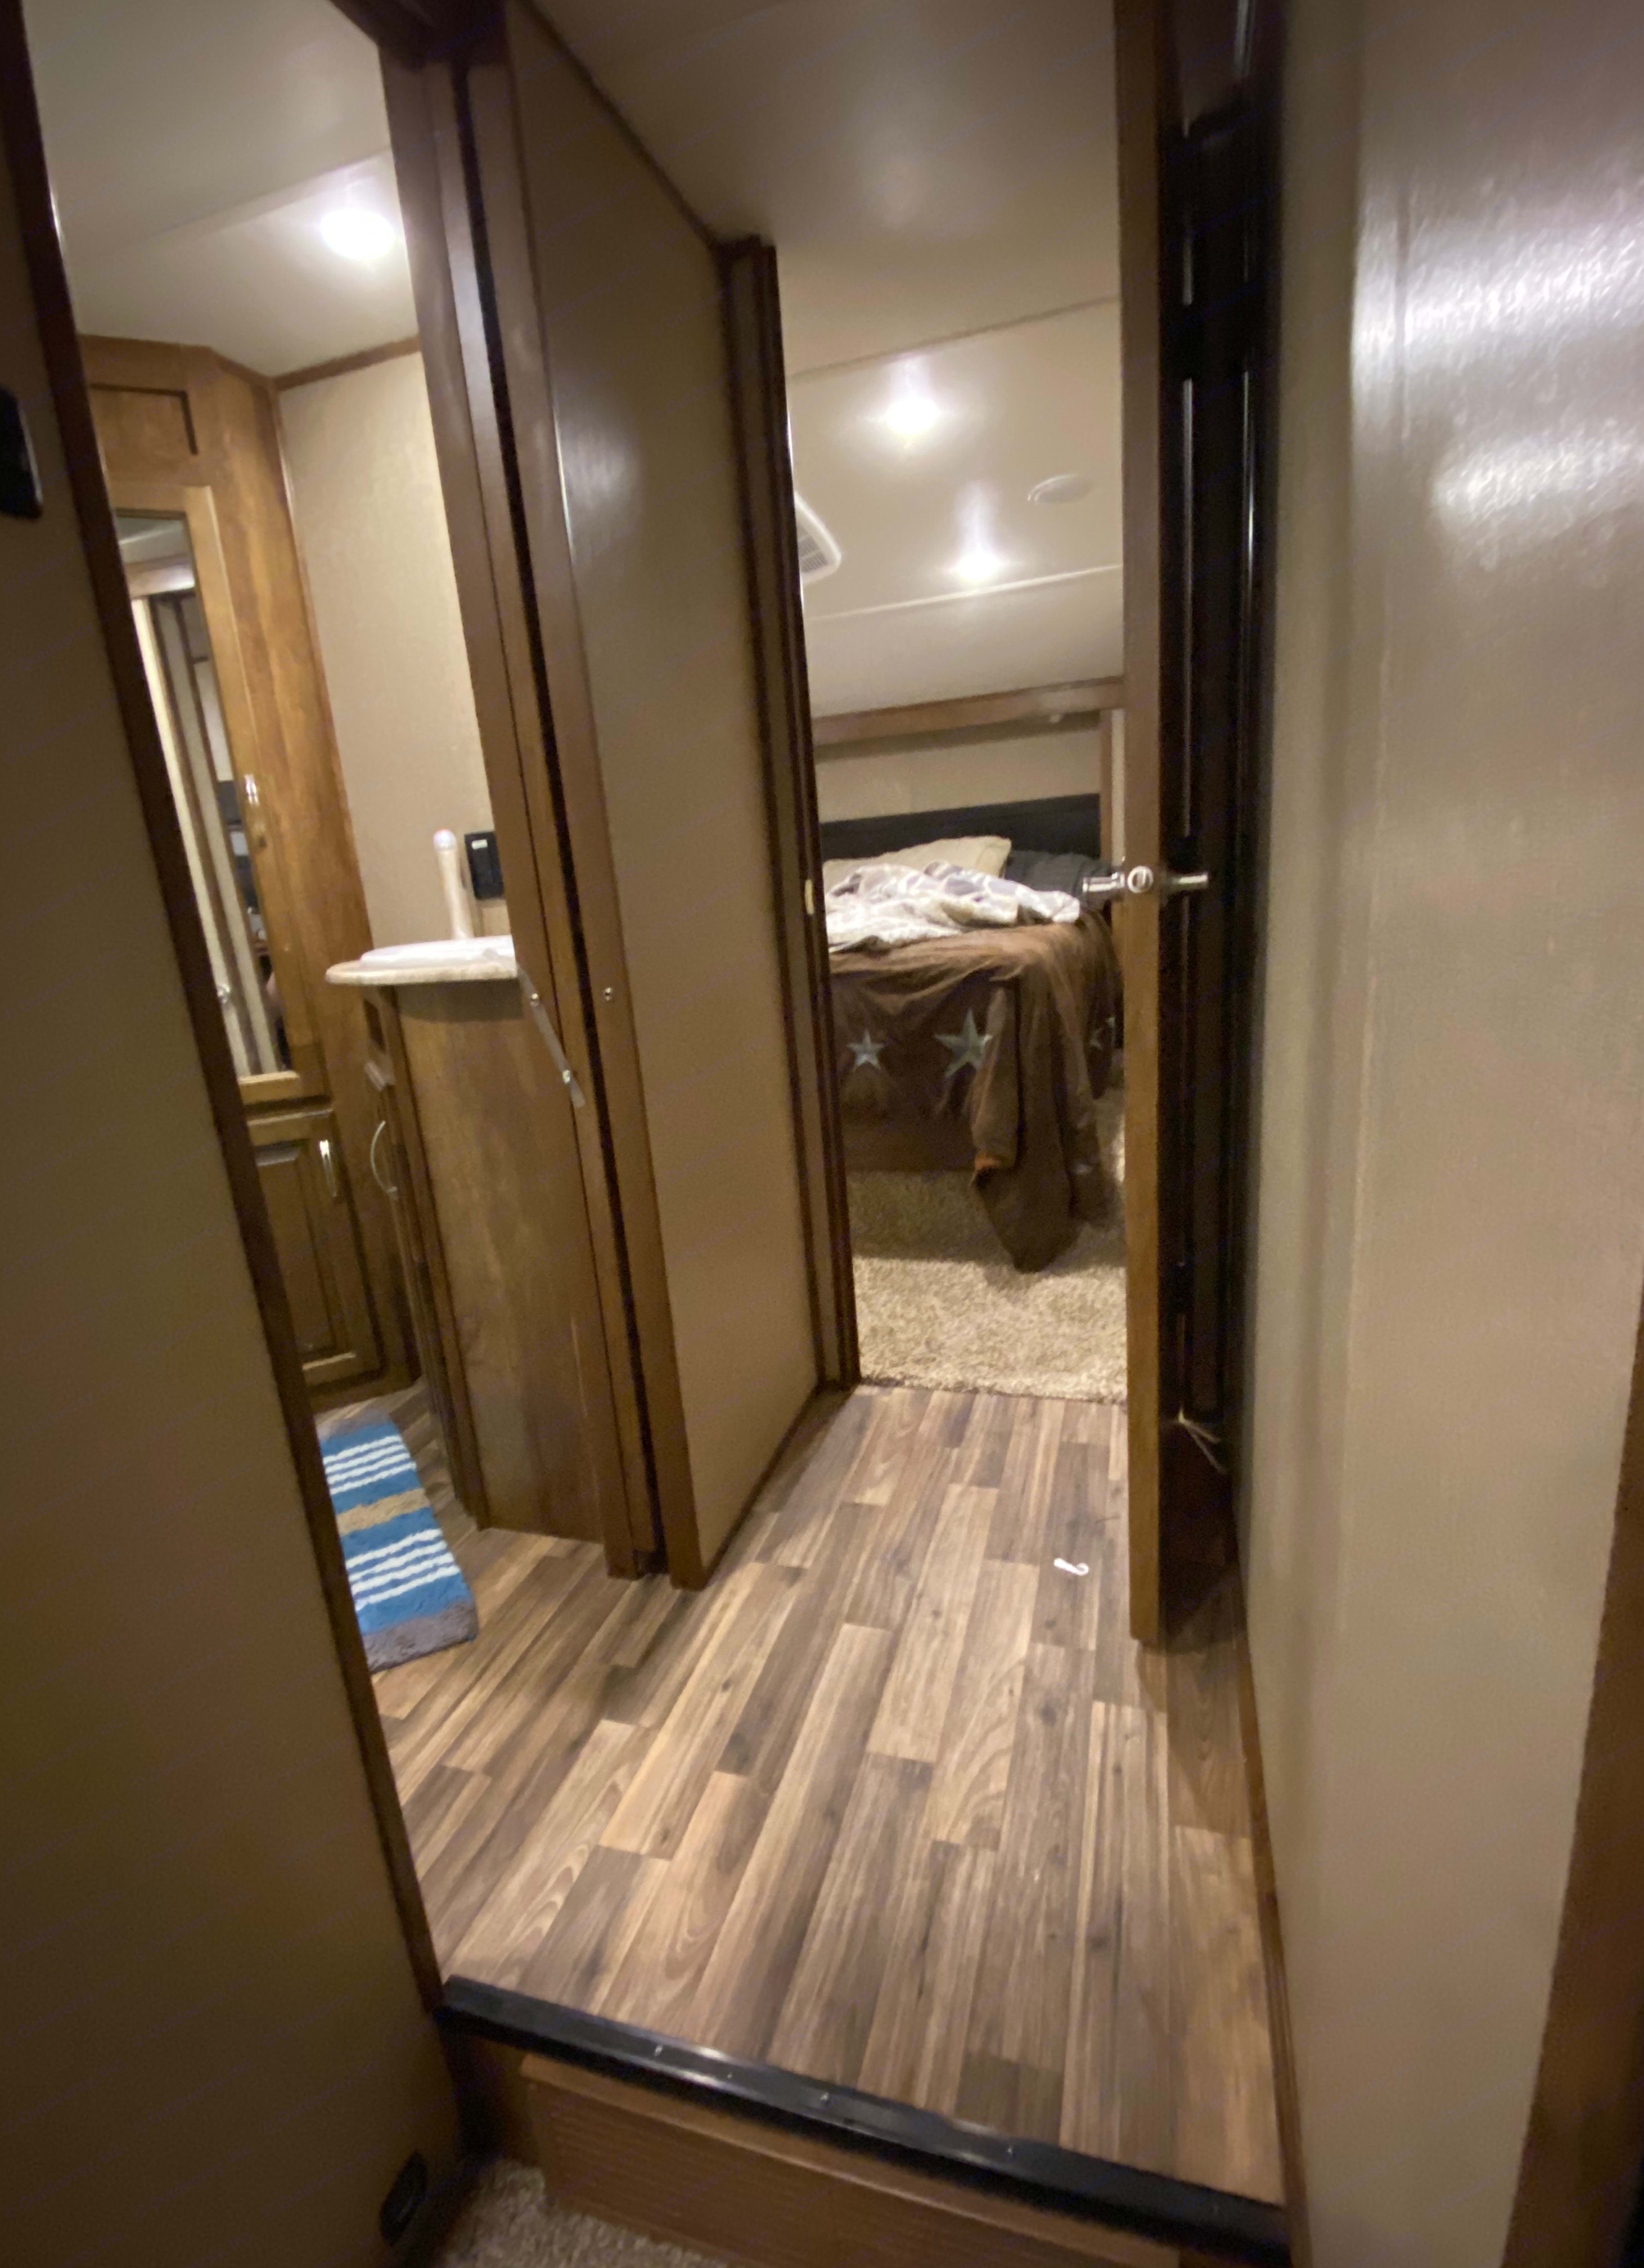 Stairs going up to bathroom and bedroom. Coachmen Chaparral 2016